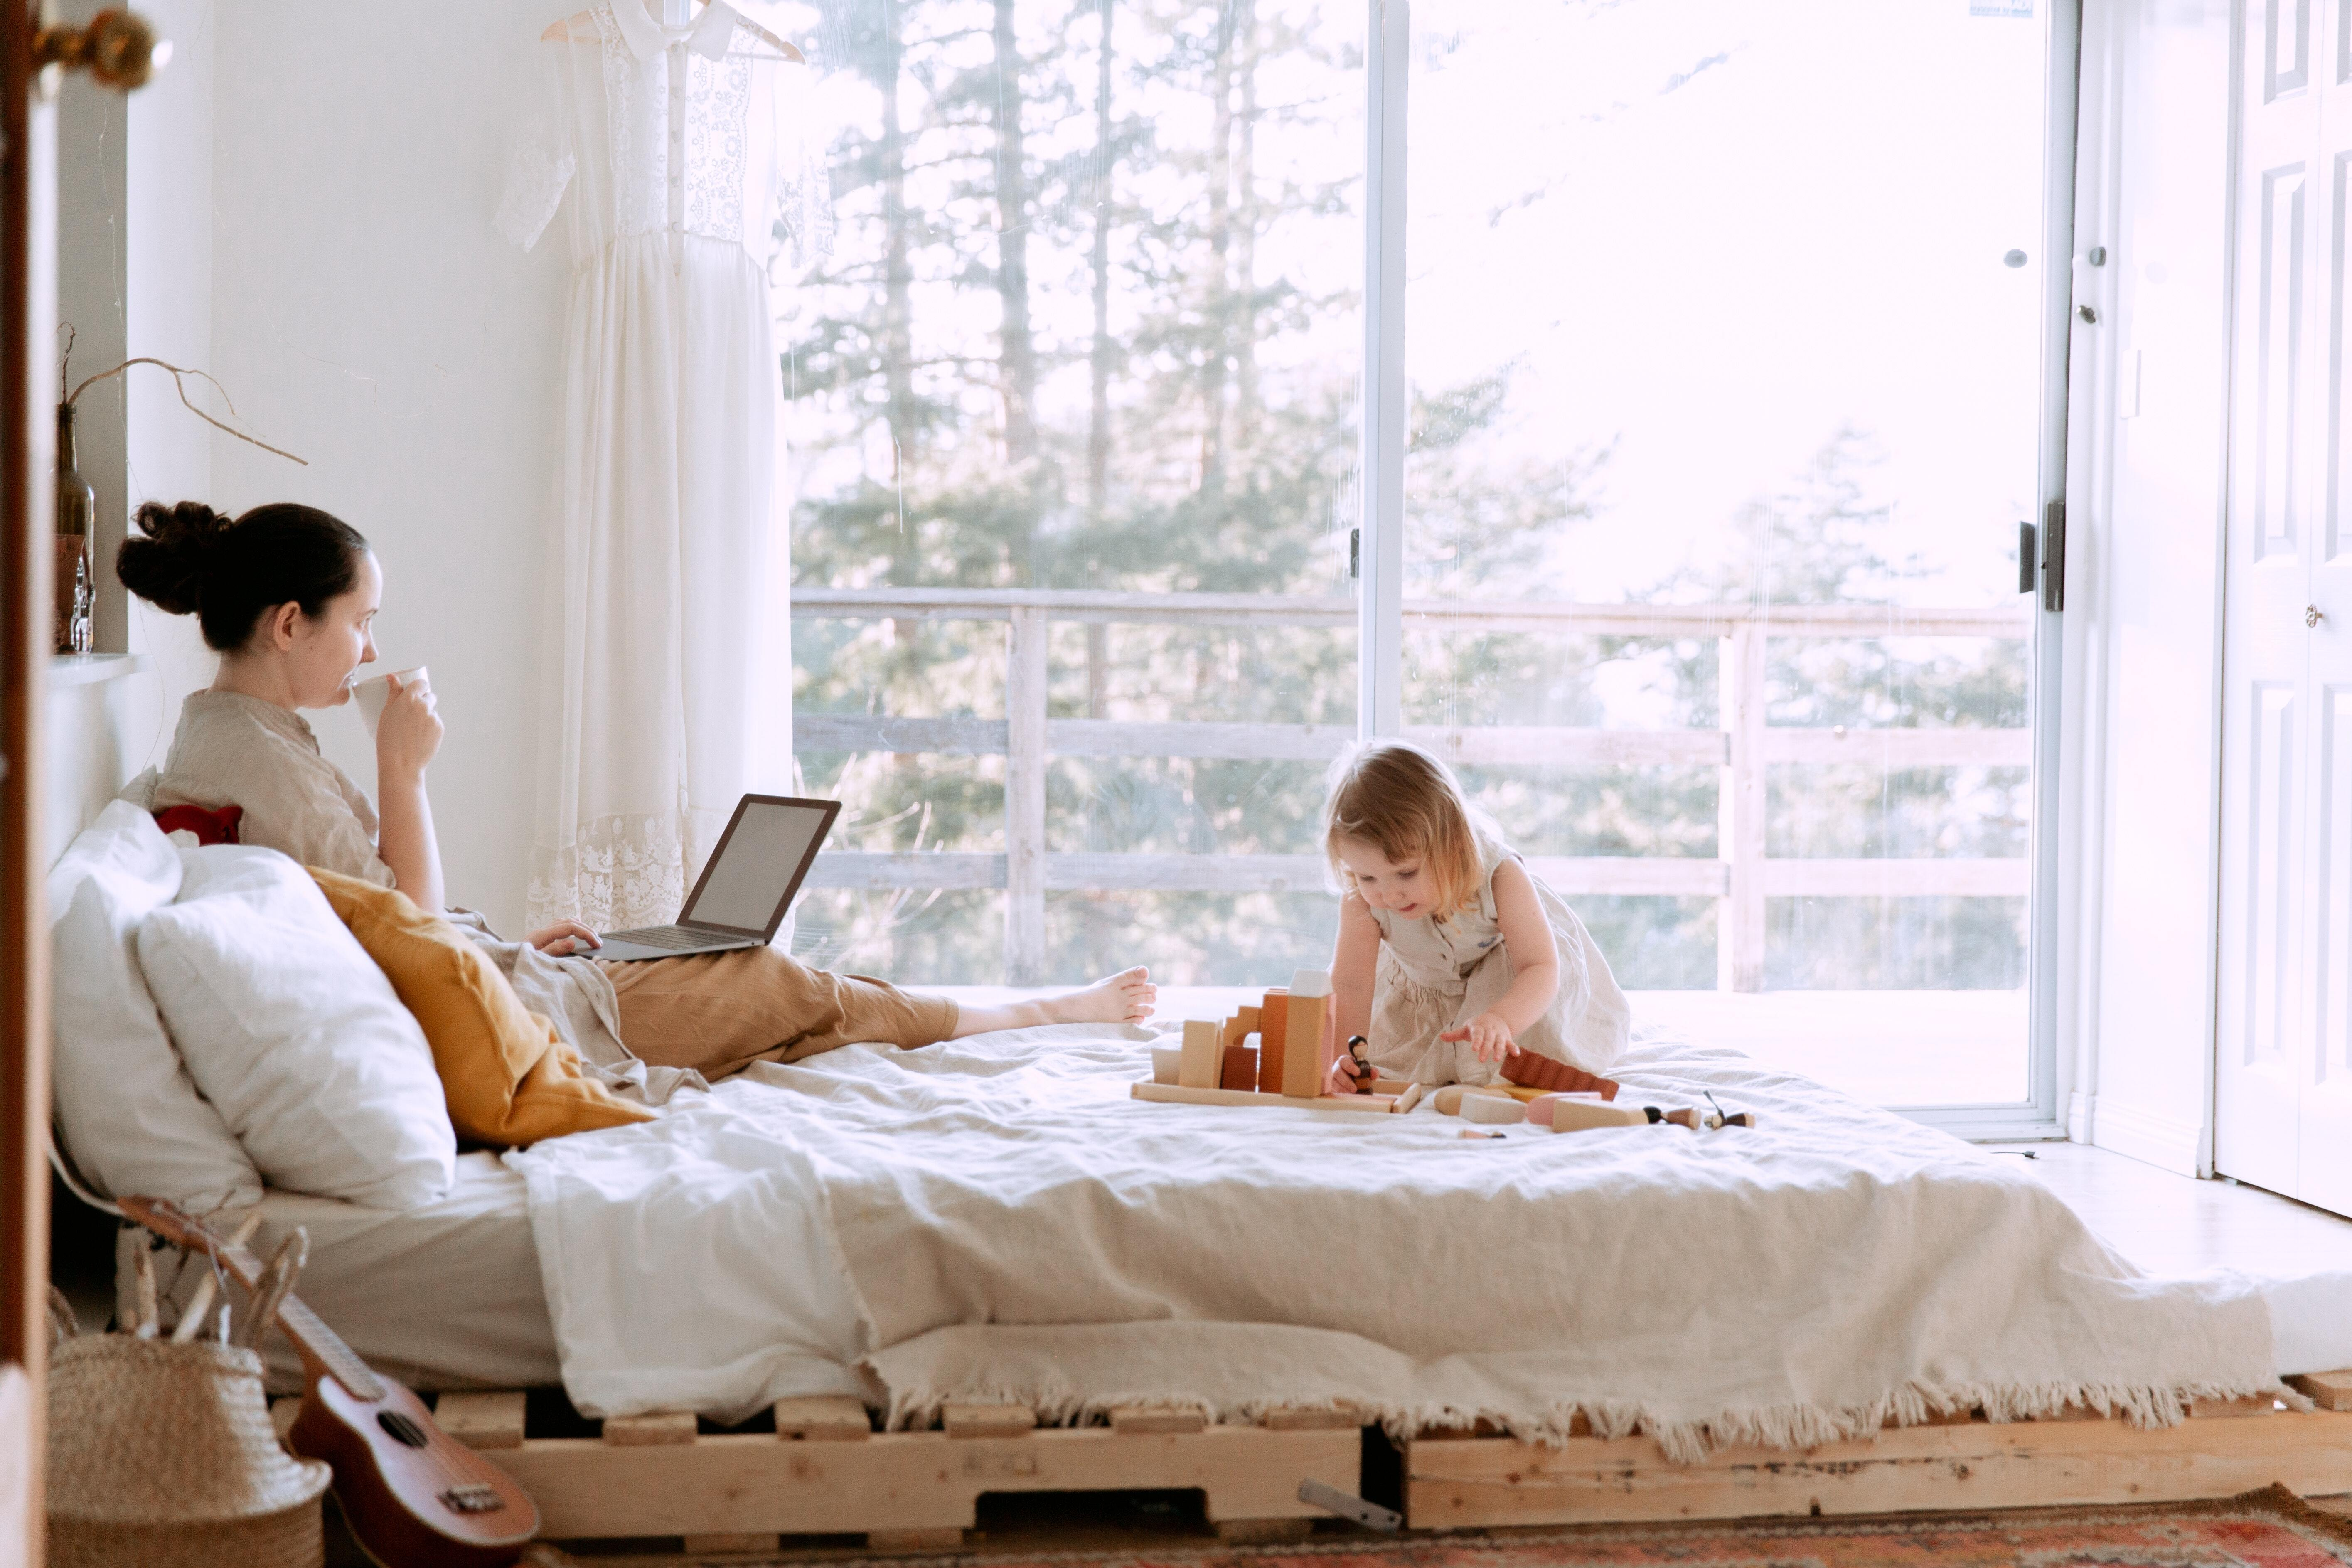 working woman on bed with child